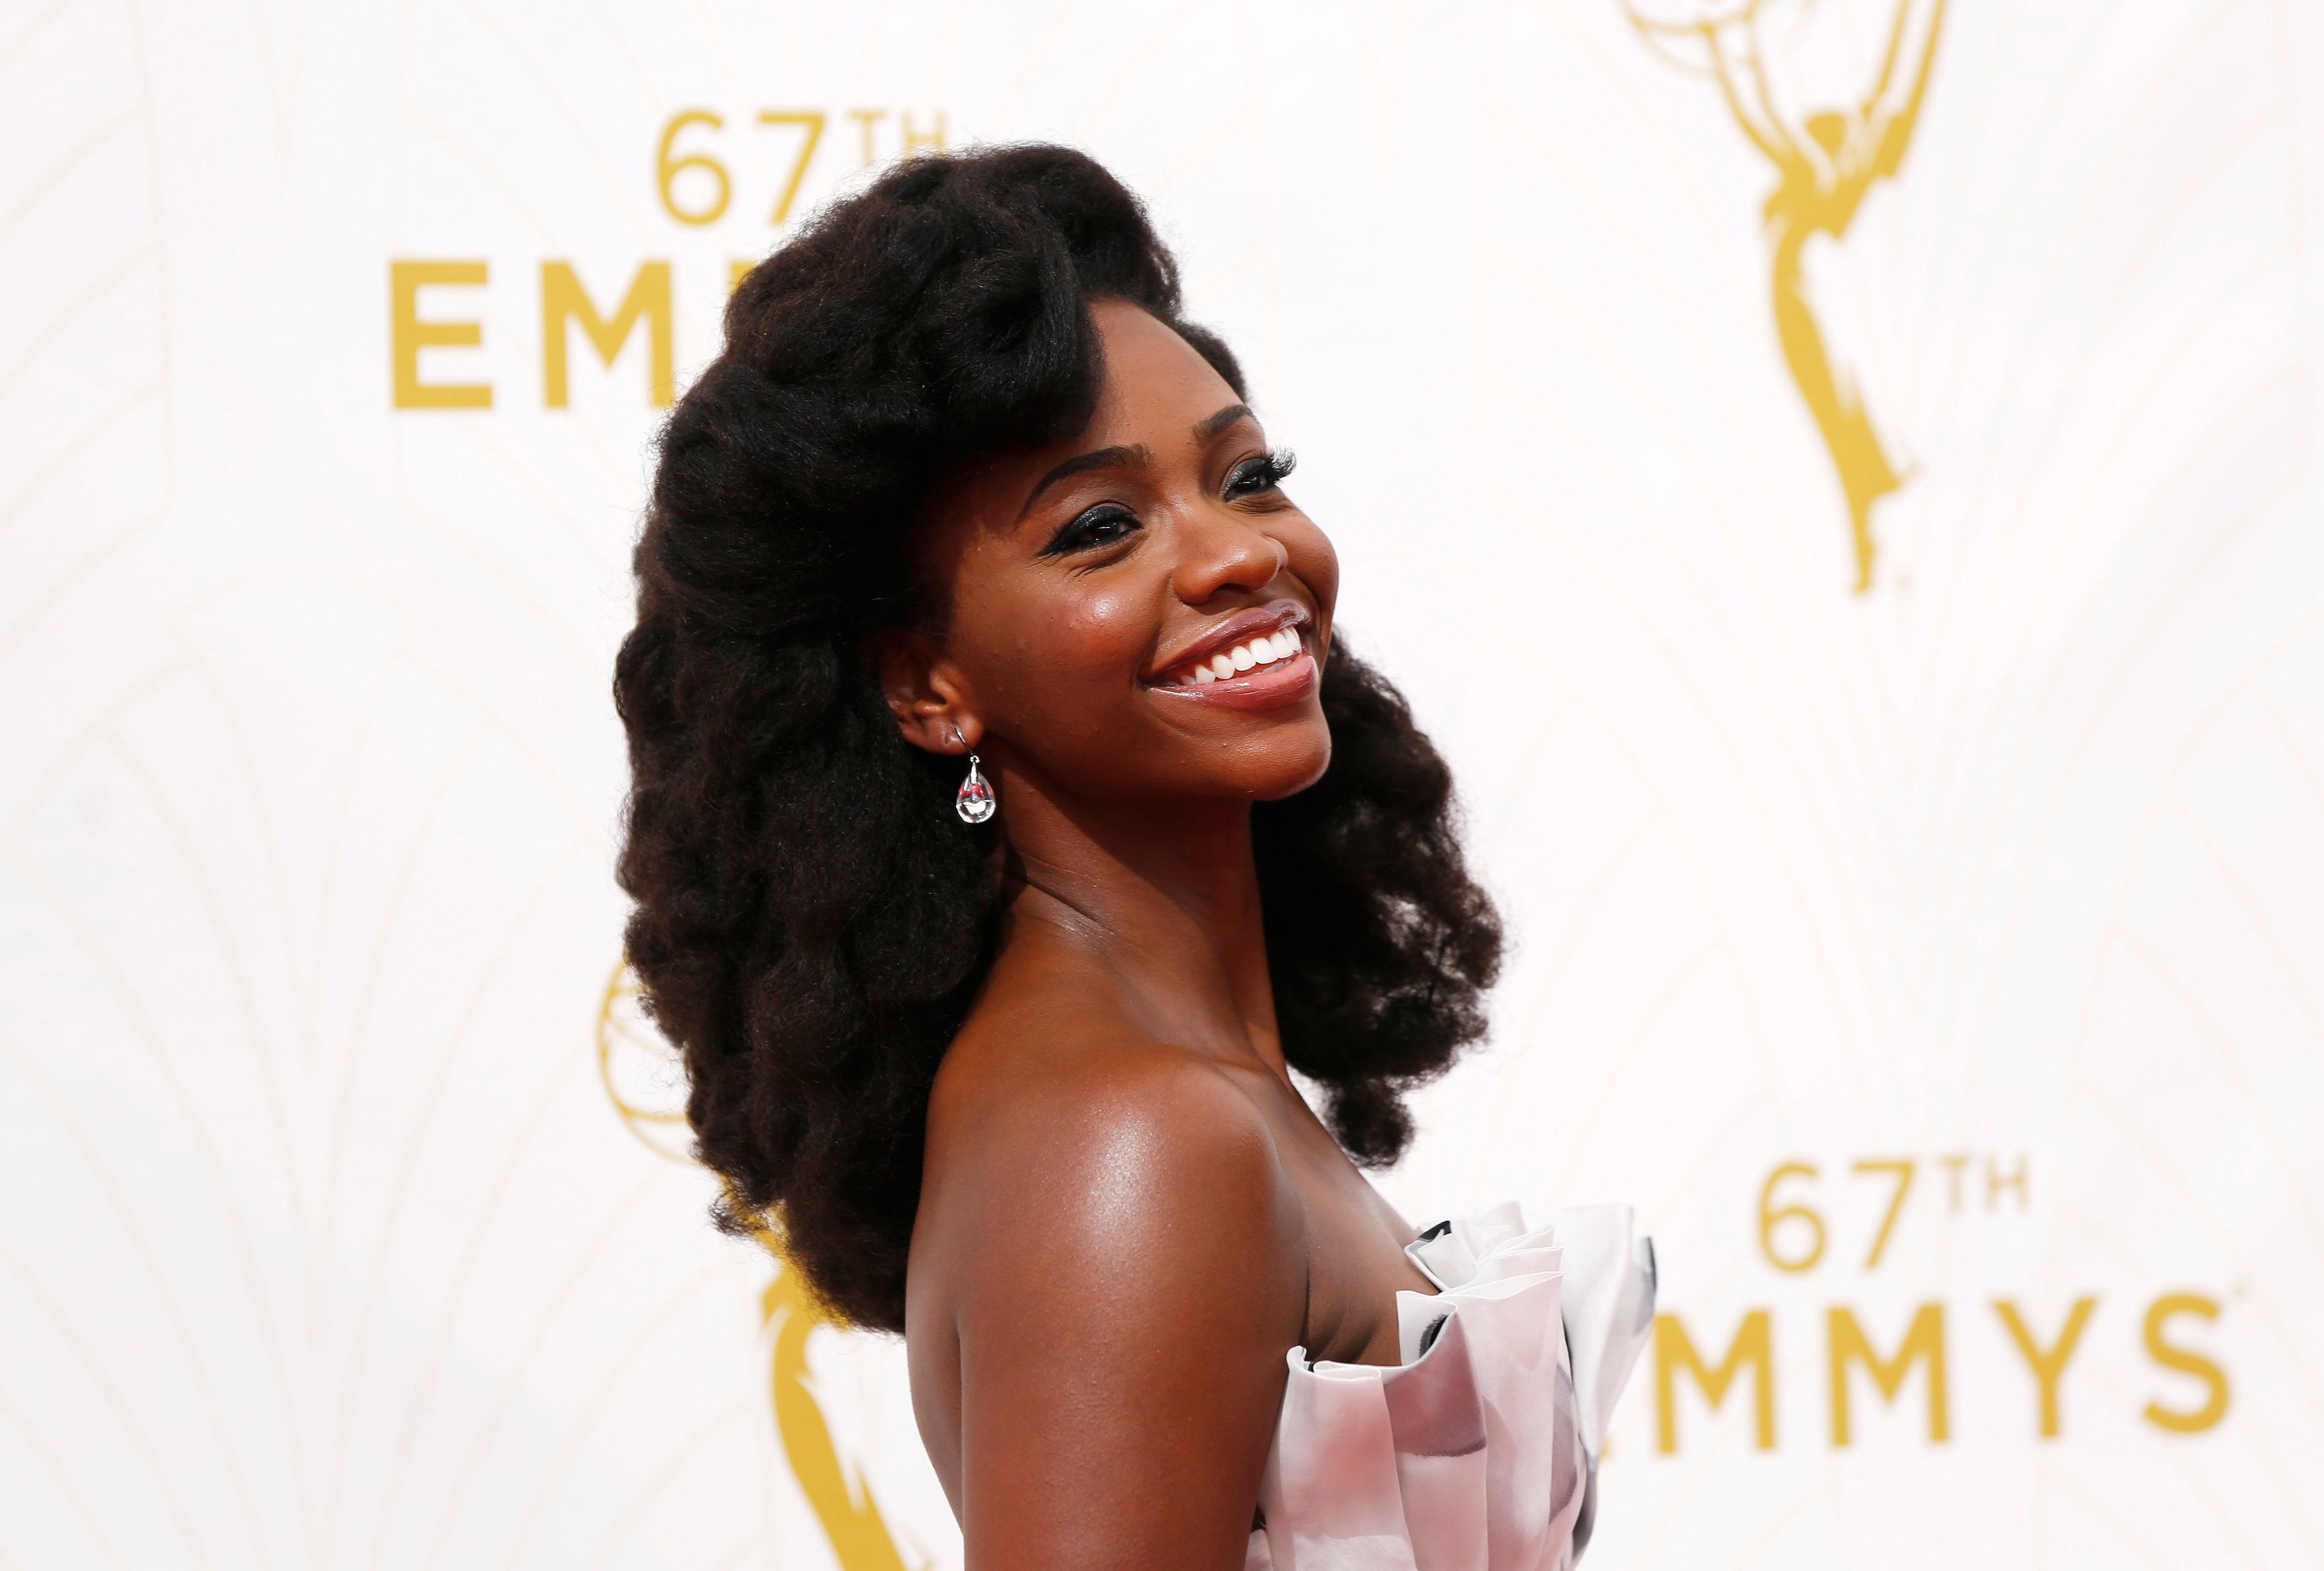 Actress Teyonah Parris arrives at the 67th Primetime Emmy Awards in Los Angeles, California September 20, 2015.  REUTERS/Mario Anzuoni